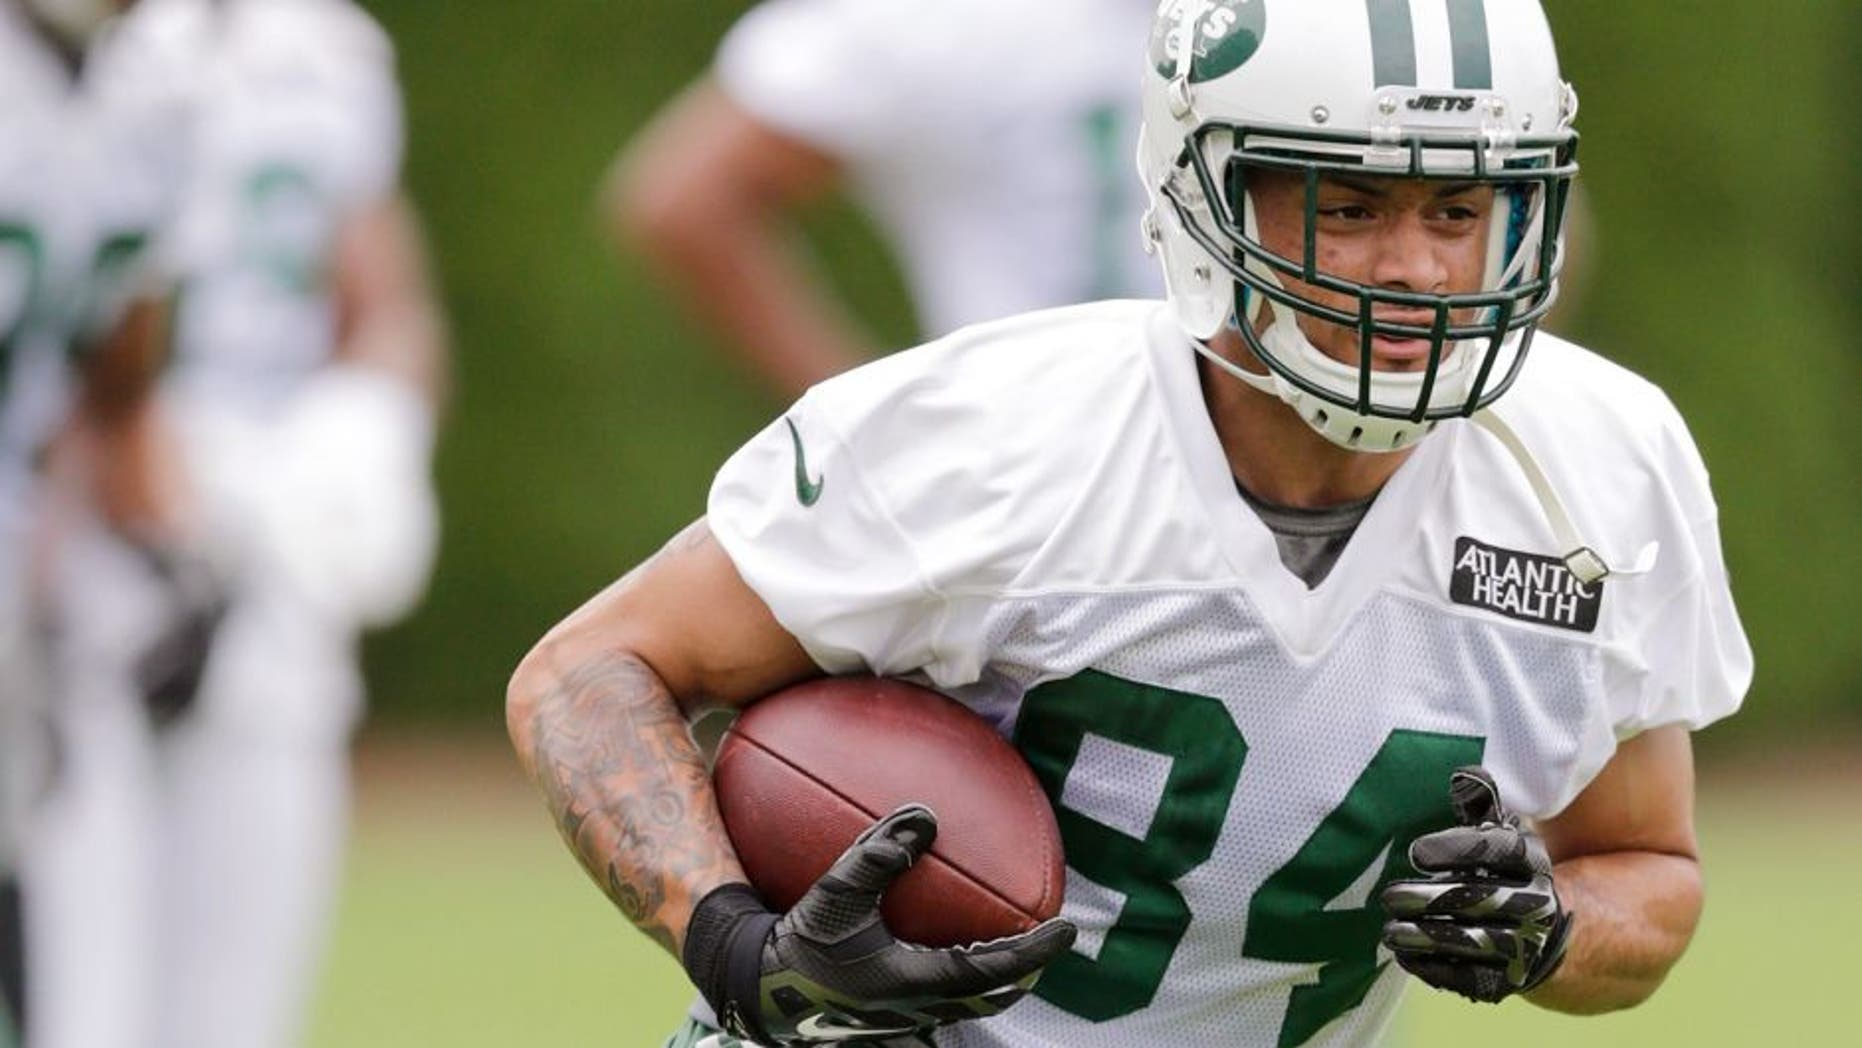 New York Jets wide receiver Devin Smith (84) runs after making a catch at NFL football training camp, Thursday, July 30, 2015, in Florham Park, N.J. (AP Photo/Frank Franklin II)